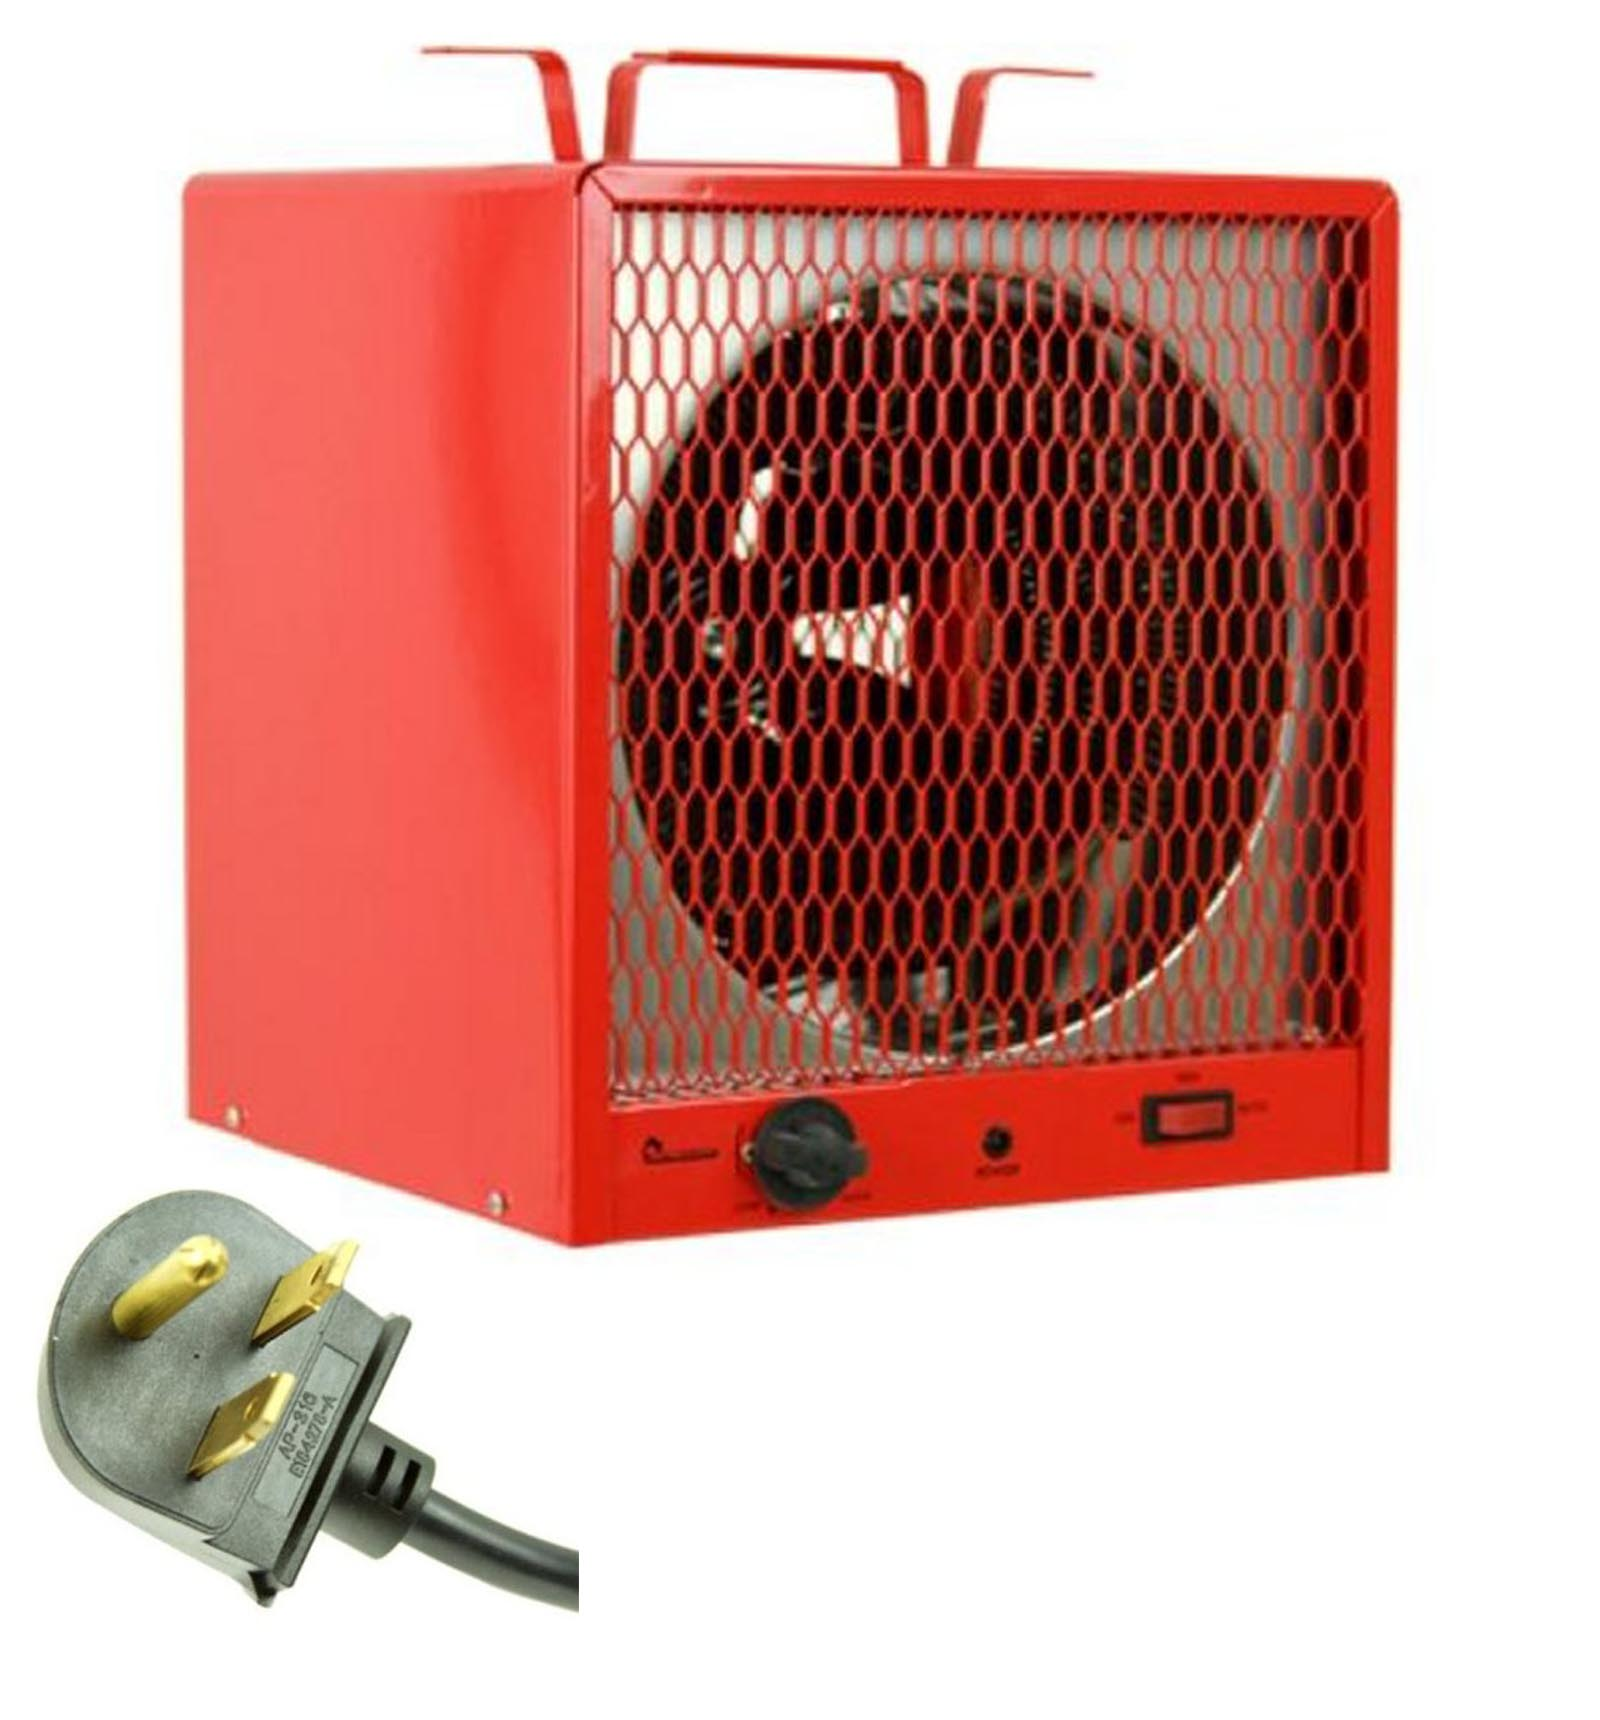 Dr Heater DR-988 Infrared Portable Industrial Heater